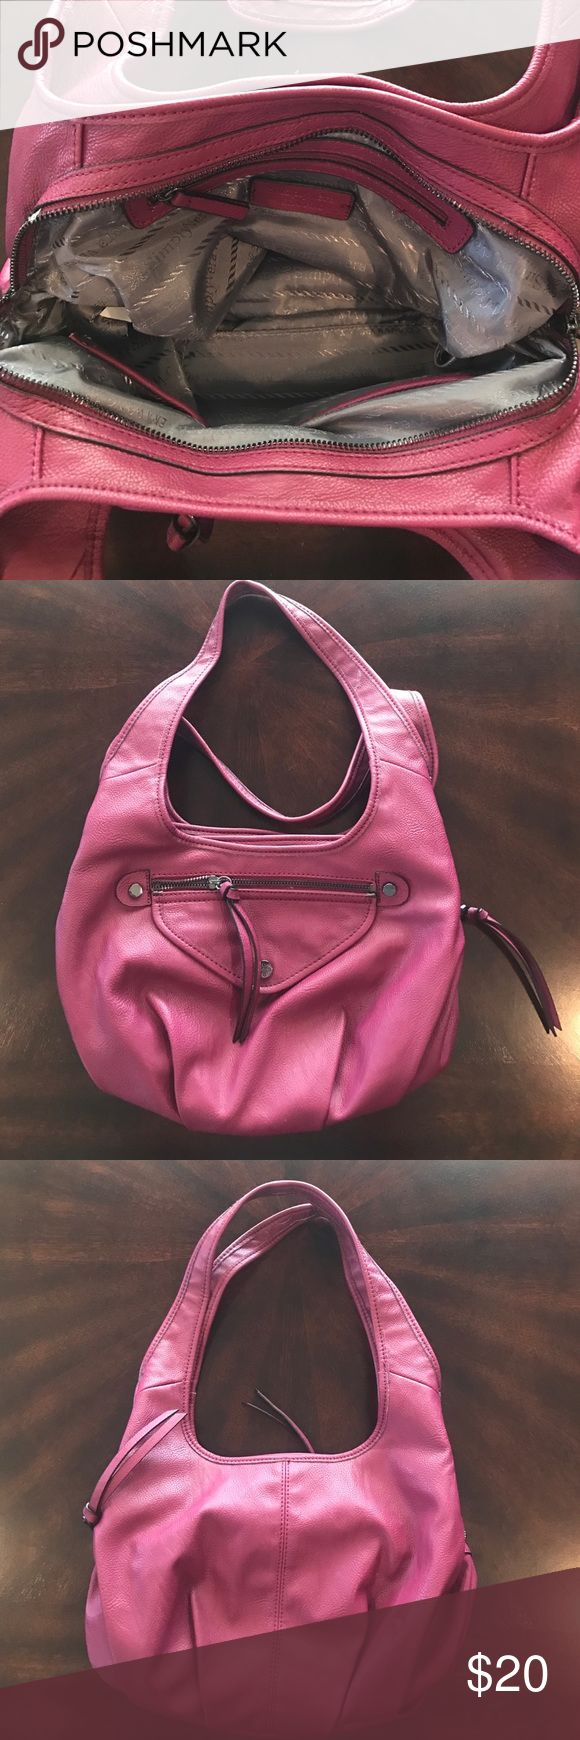 Simply Vera: Vera Wang purse VERY gently used Vera Wang plum colored purse with tassels from zippers. No stains, holes. All working zippers Simply Vera Vera Wang Bags Shoulder Bags